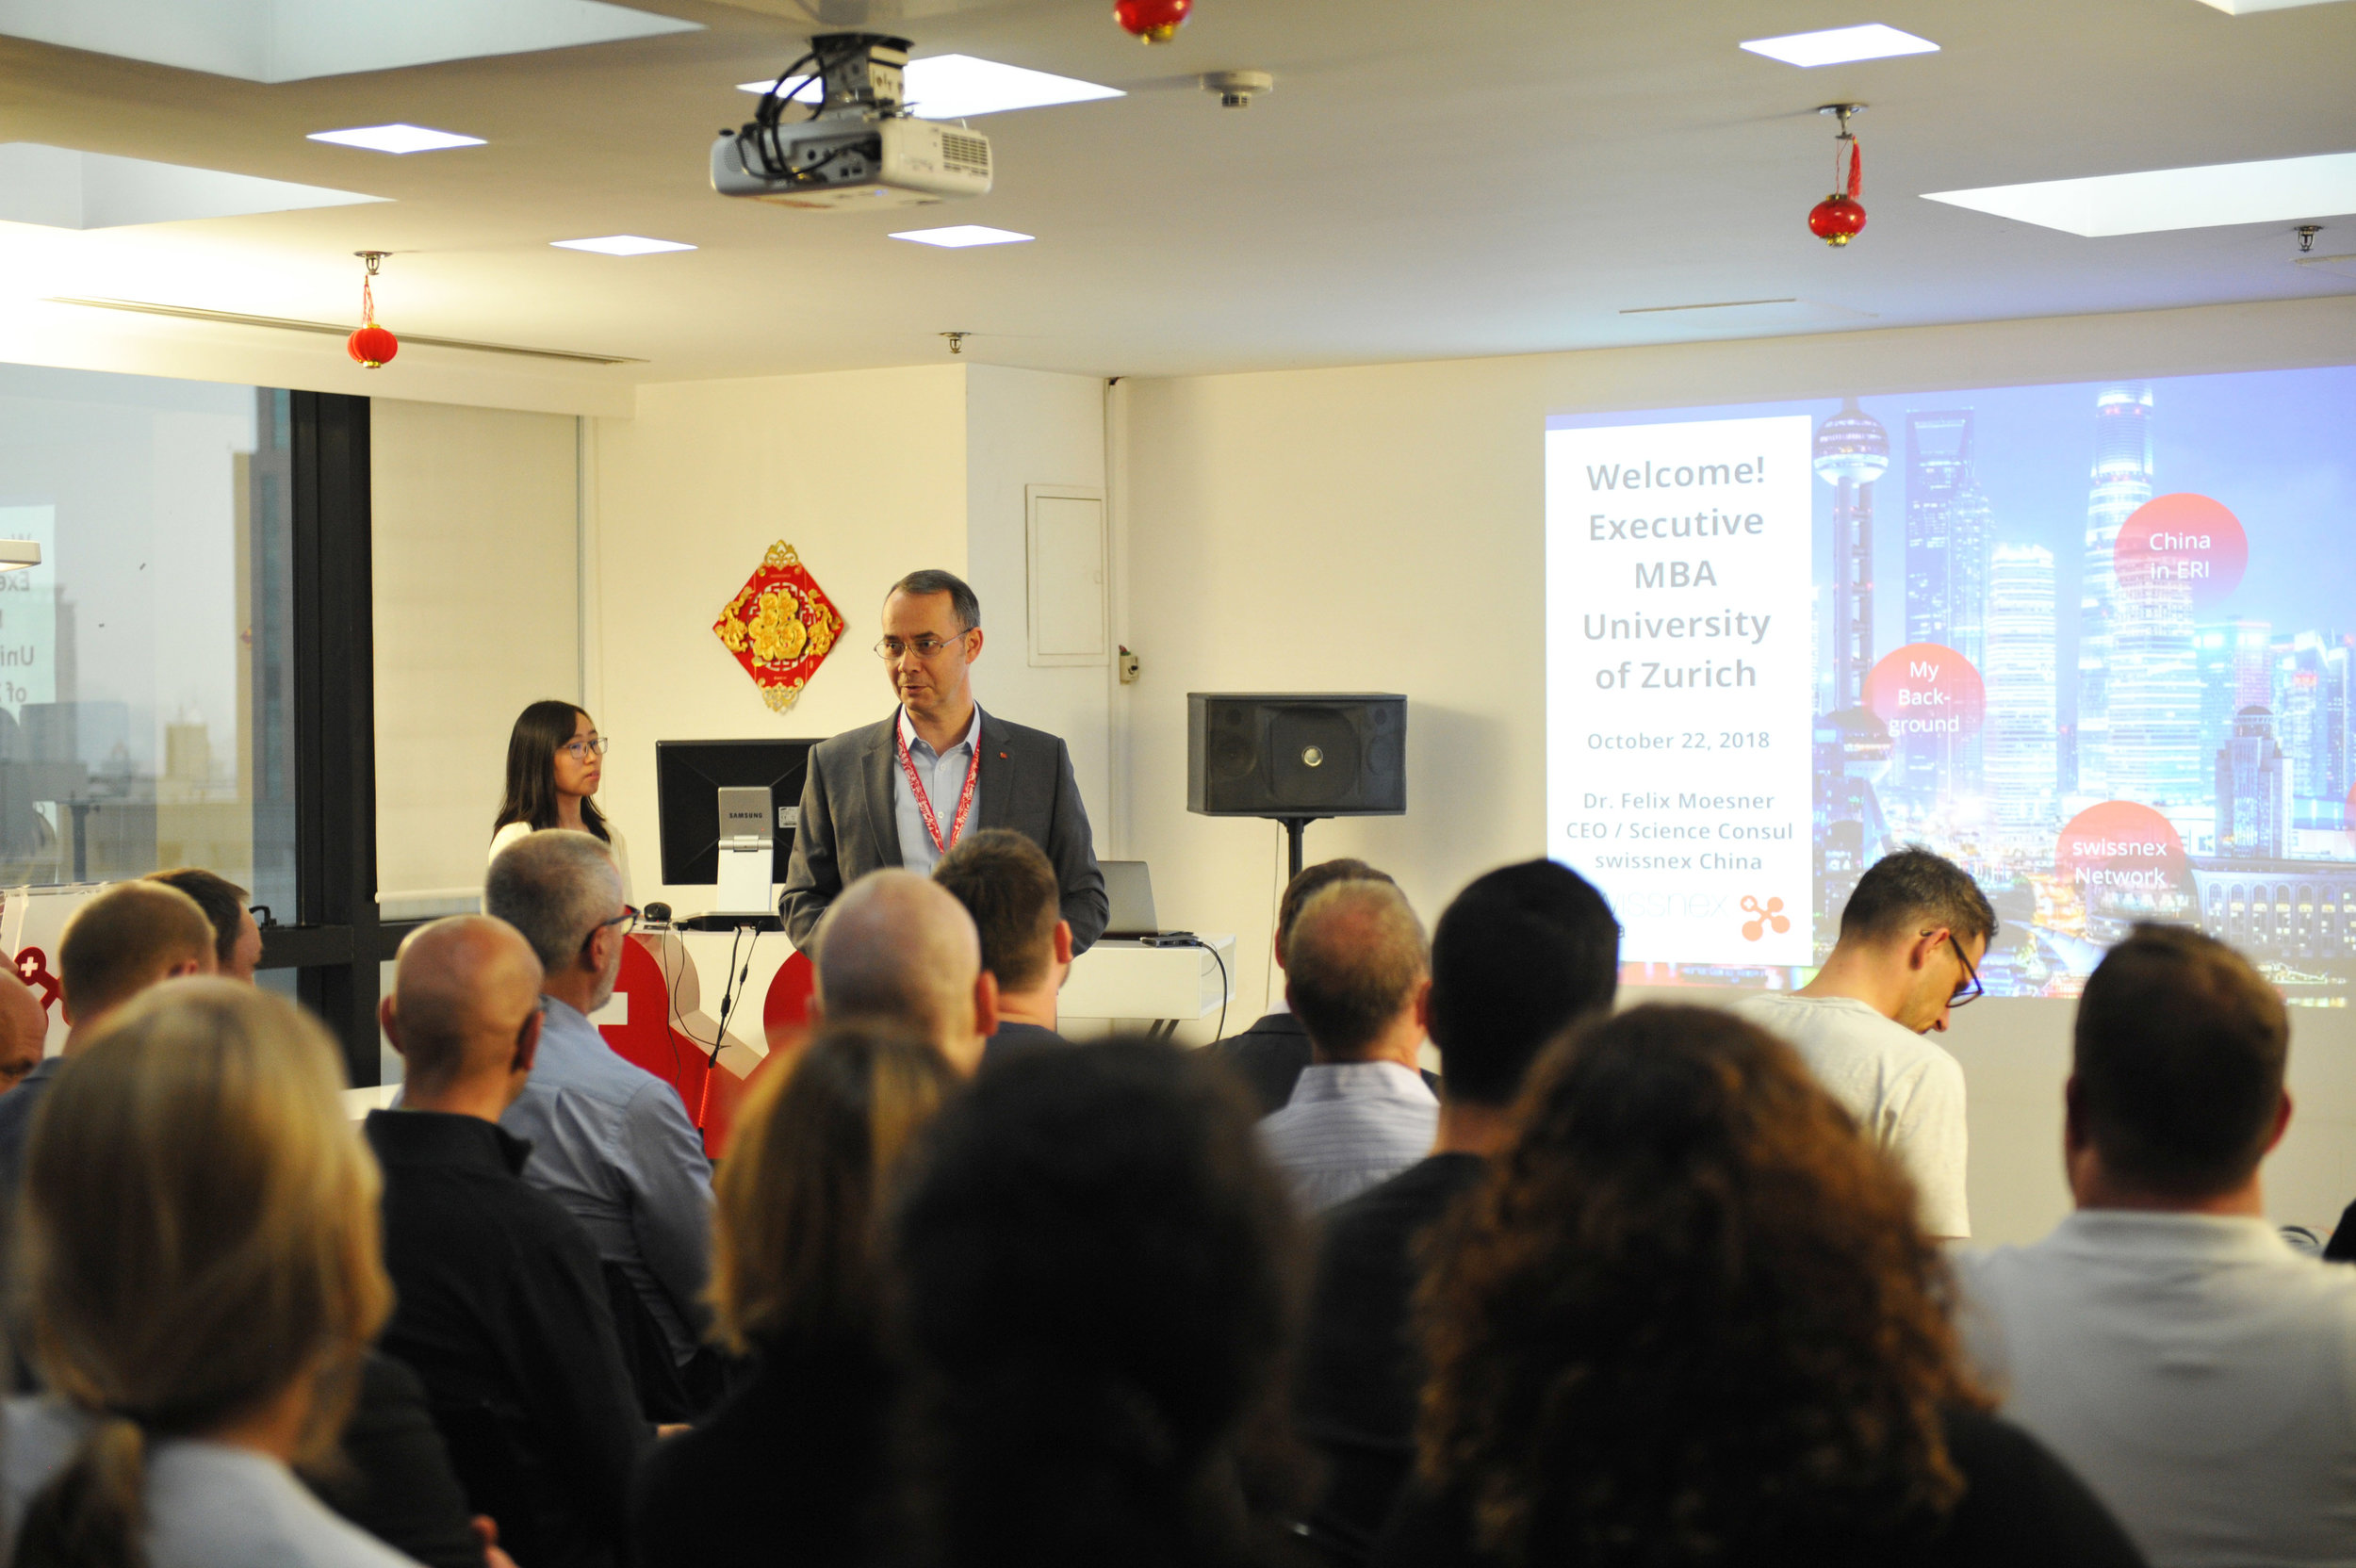 Dr. Felix Moesner, Science Consul and CEO of swissnex China, presented the swissnex China mission to the delegation.